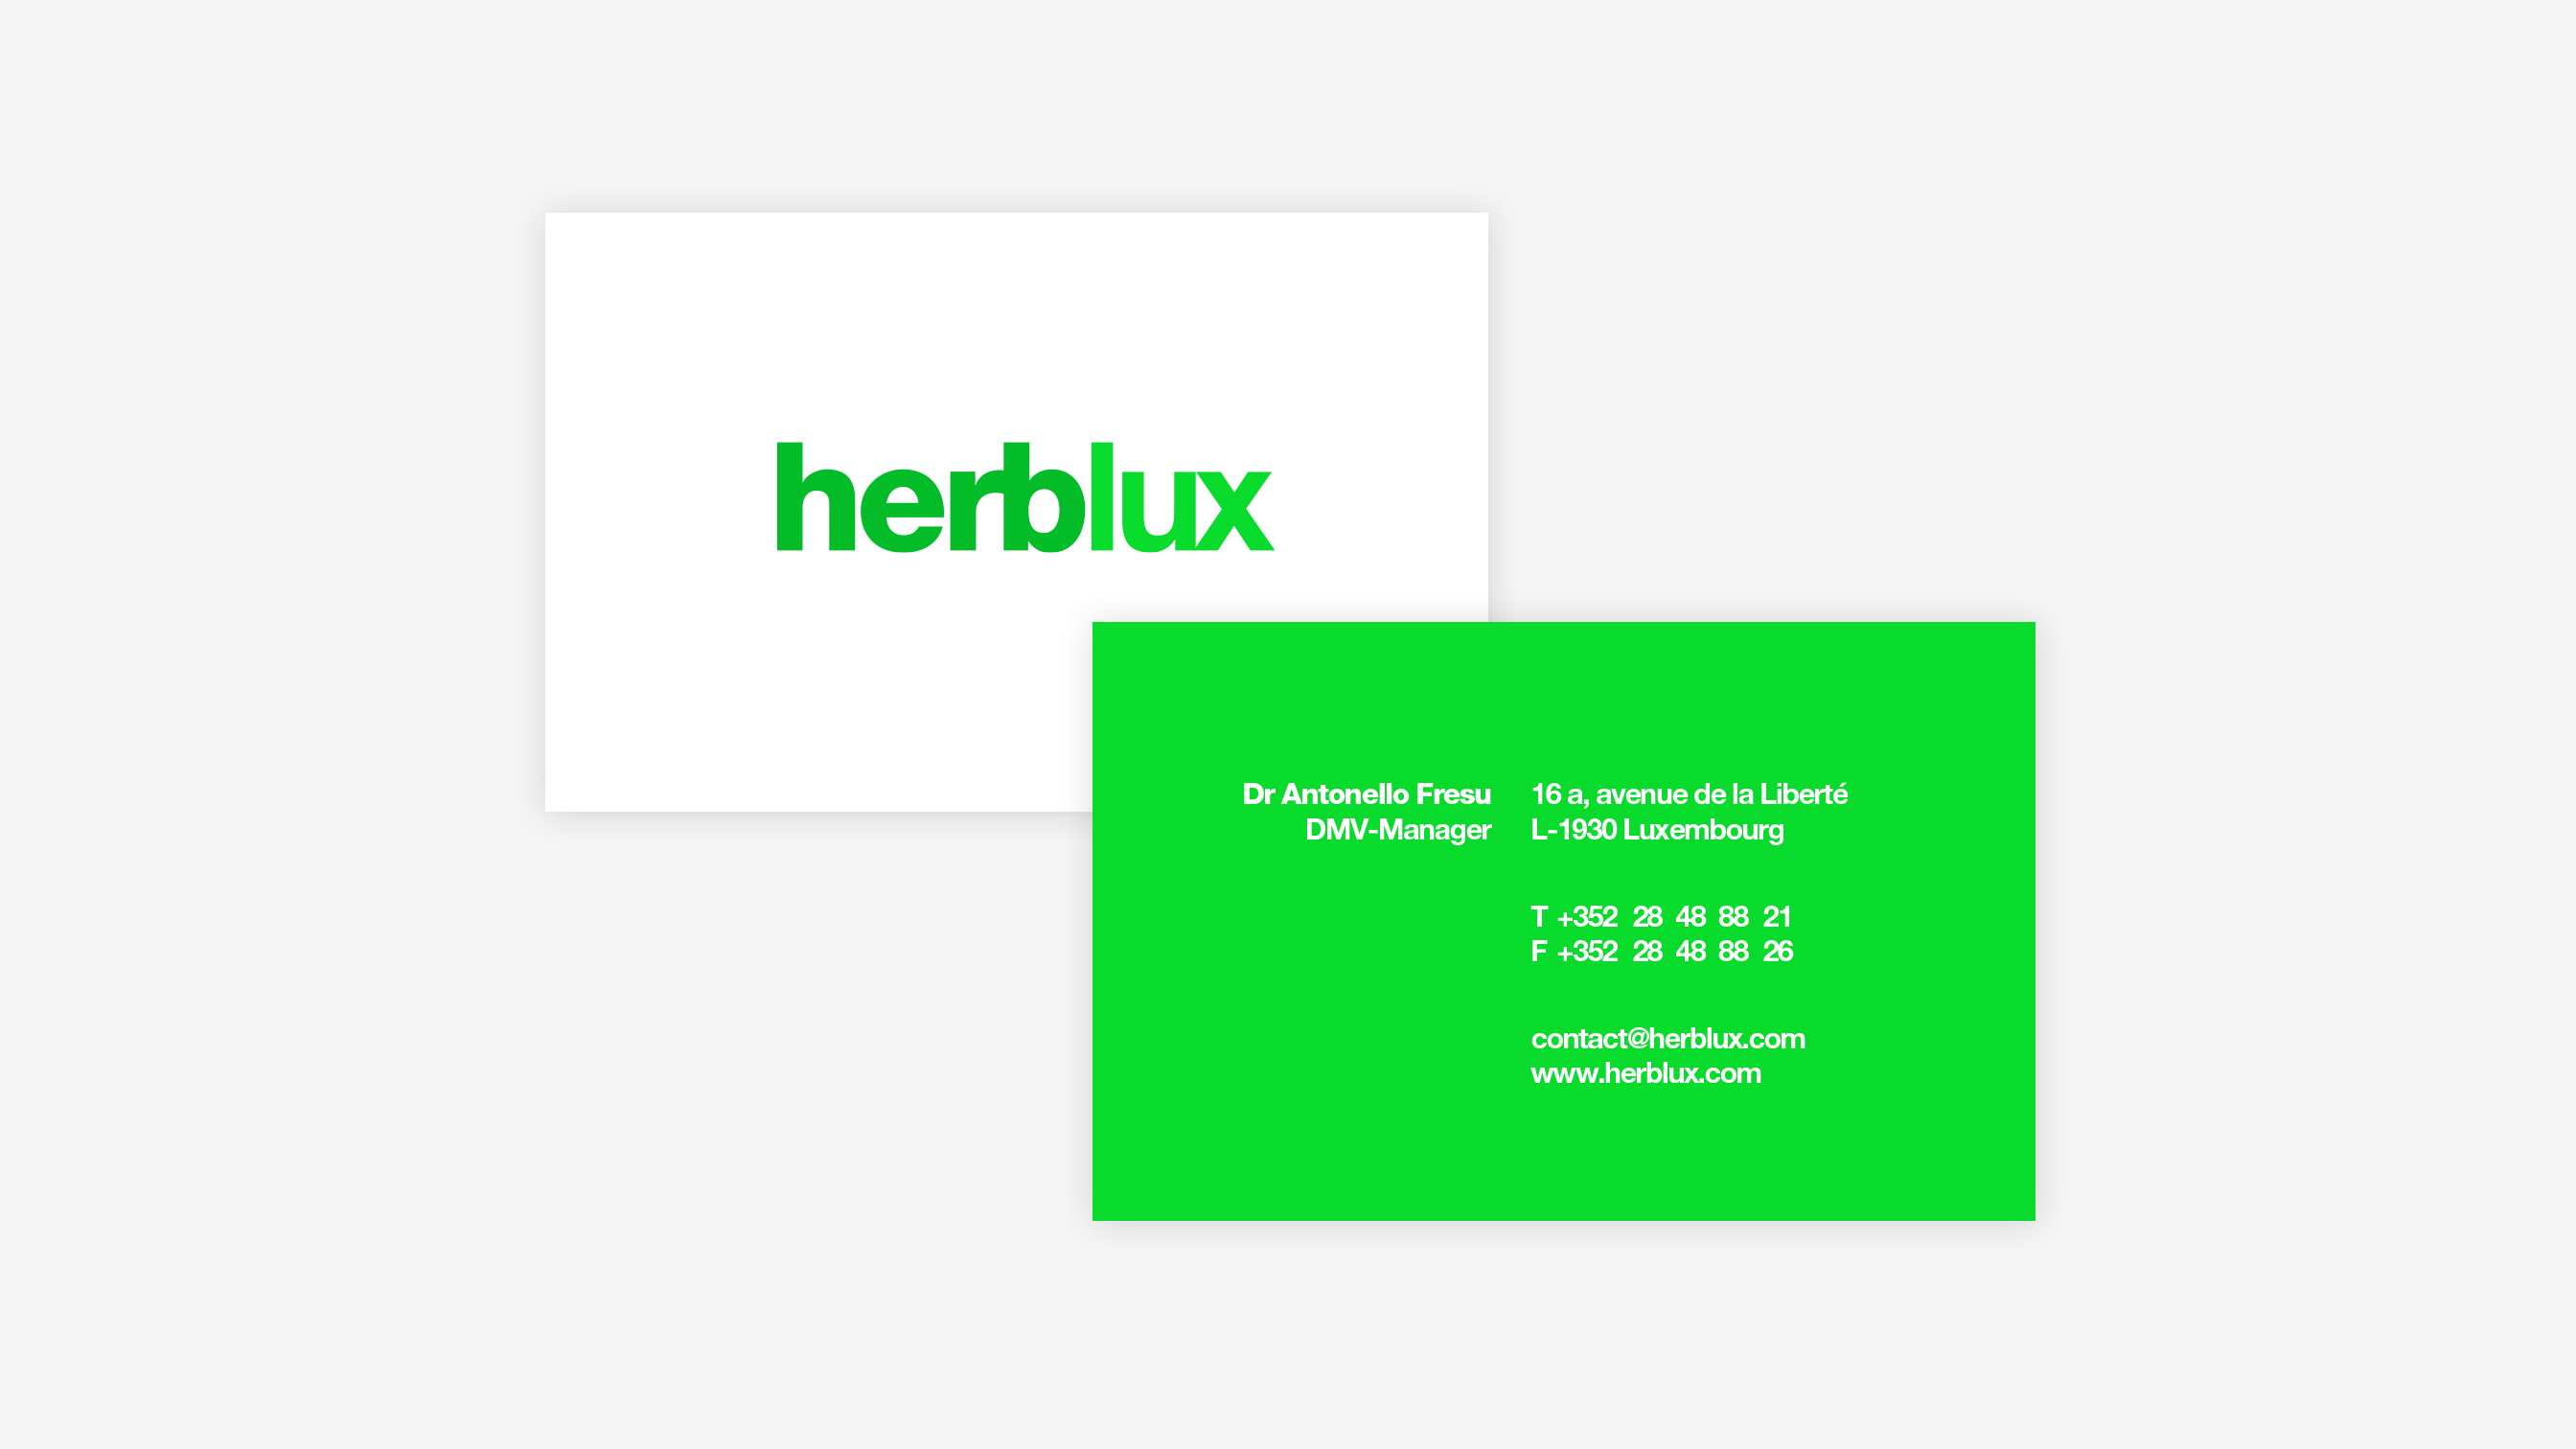 herblux-cartes-pikteo